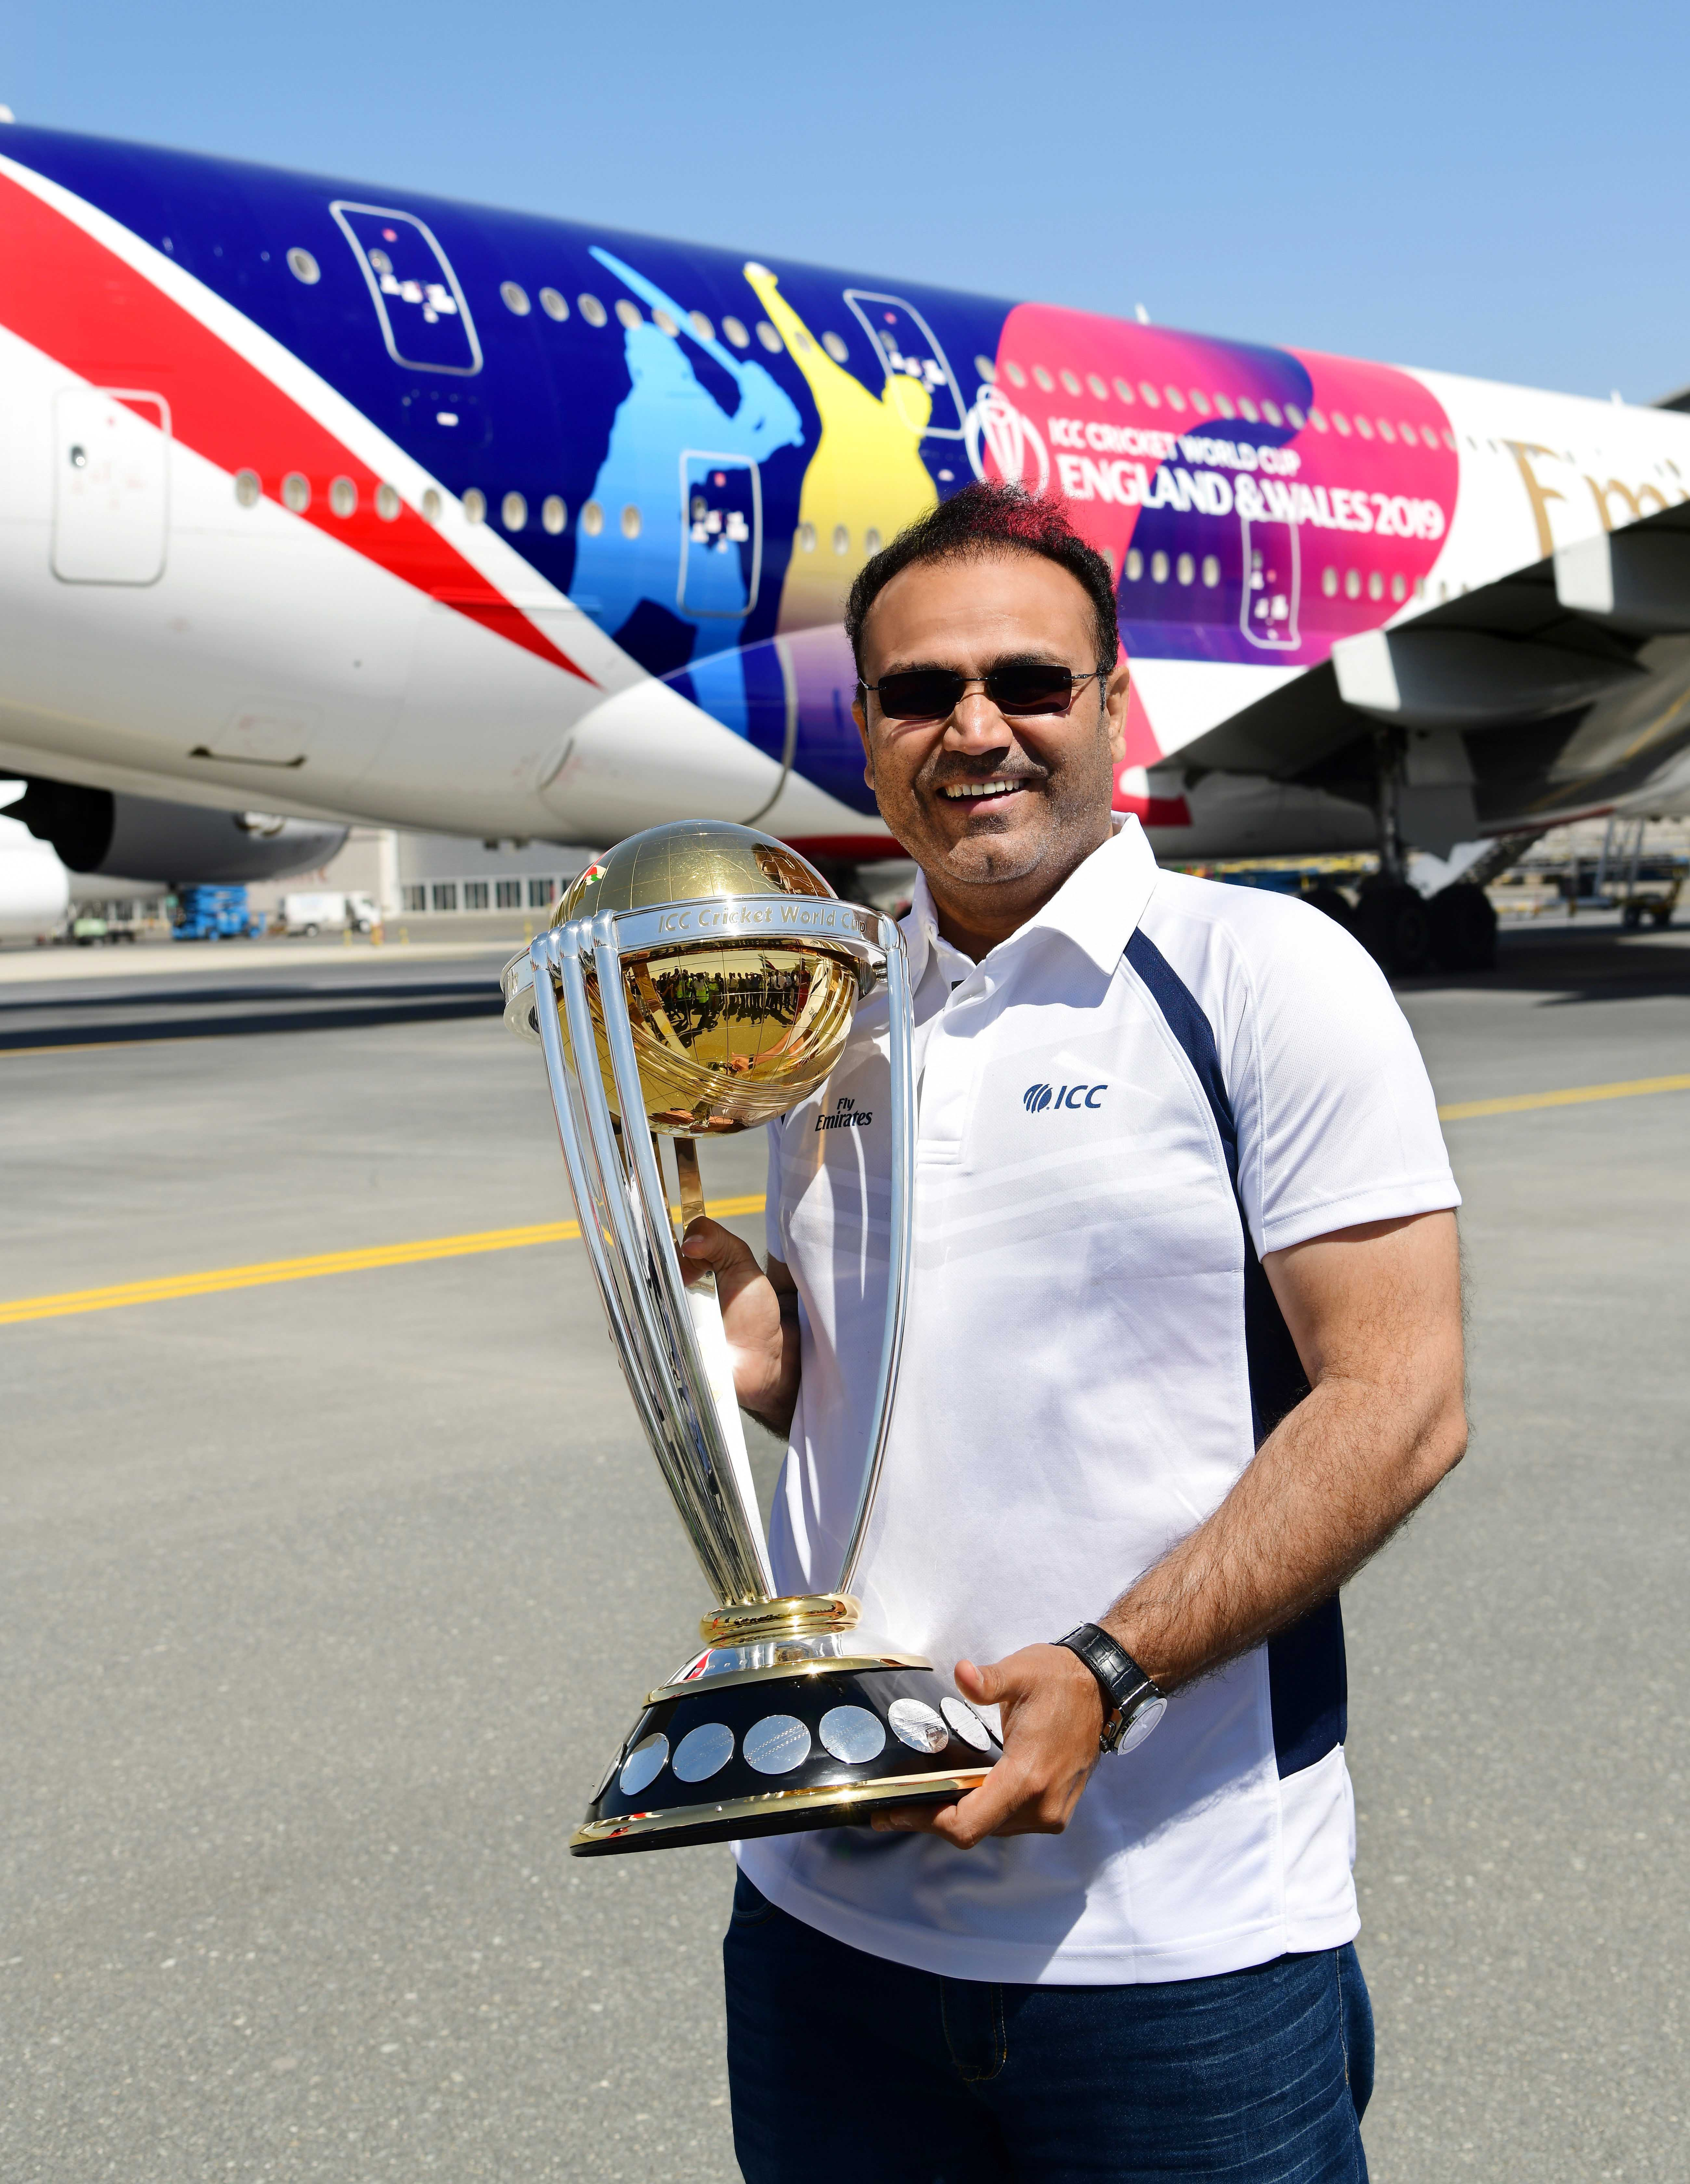 ICC Men's Cricket World Cup 2011 winner, Virender Sehwag with the trophy.